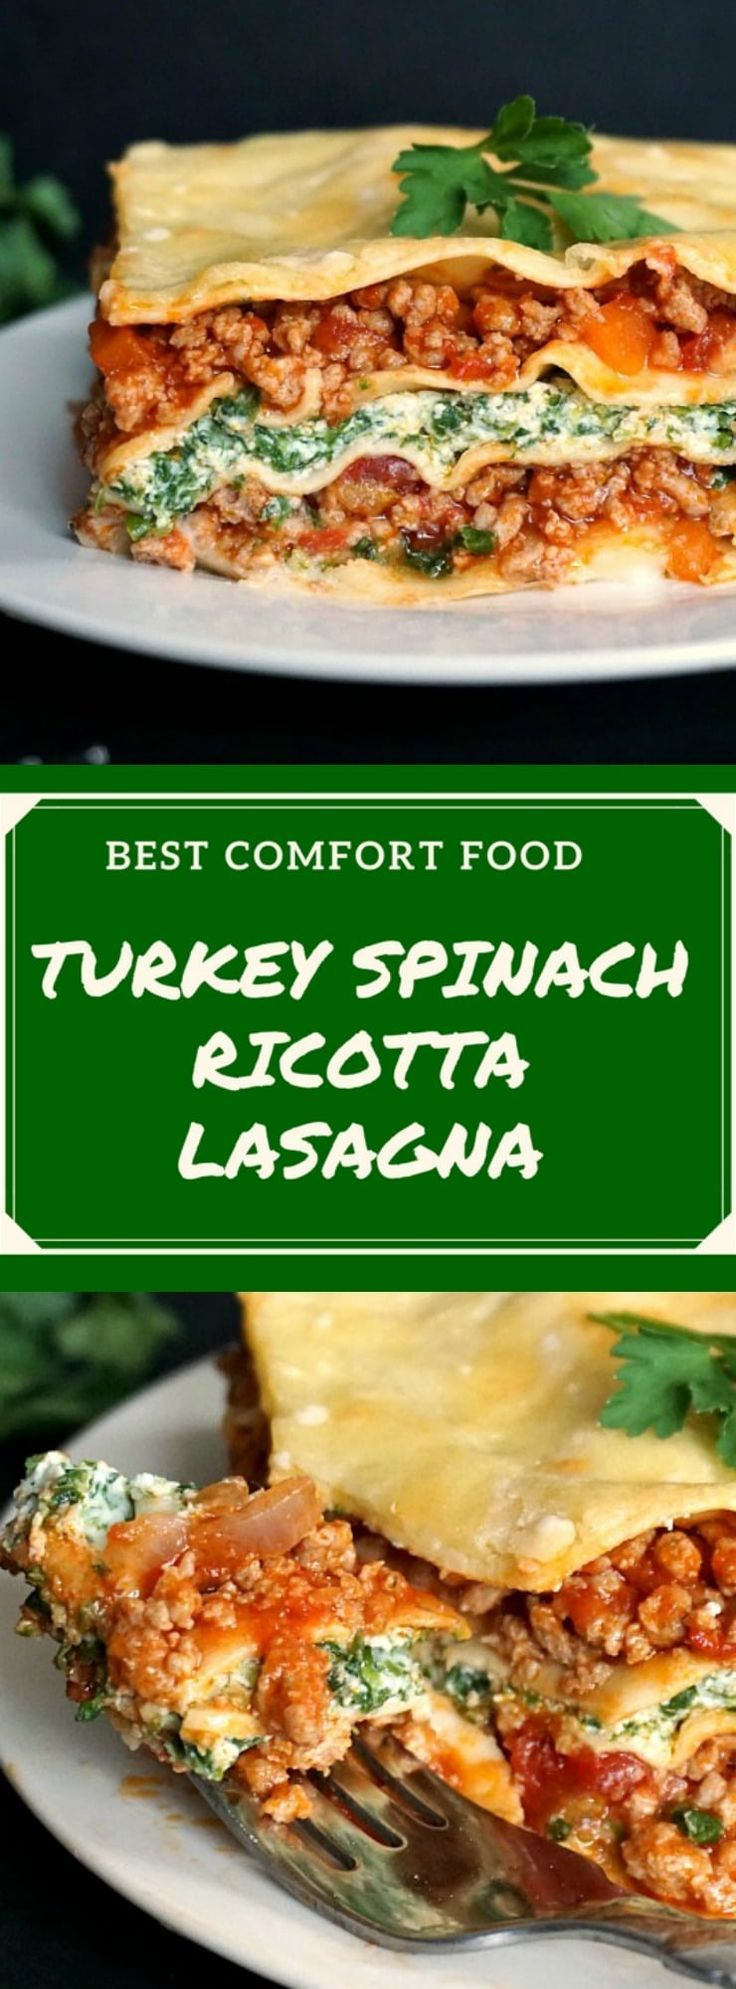 Turkey spinach lasagna recipe with ricotta, healthy and comforting, my take on one of Italy's best recipes. Comfort food at its best! #groundturkey, #turkeyrecipes, #groundturkey , #lasagna